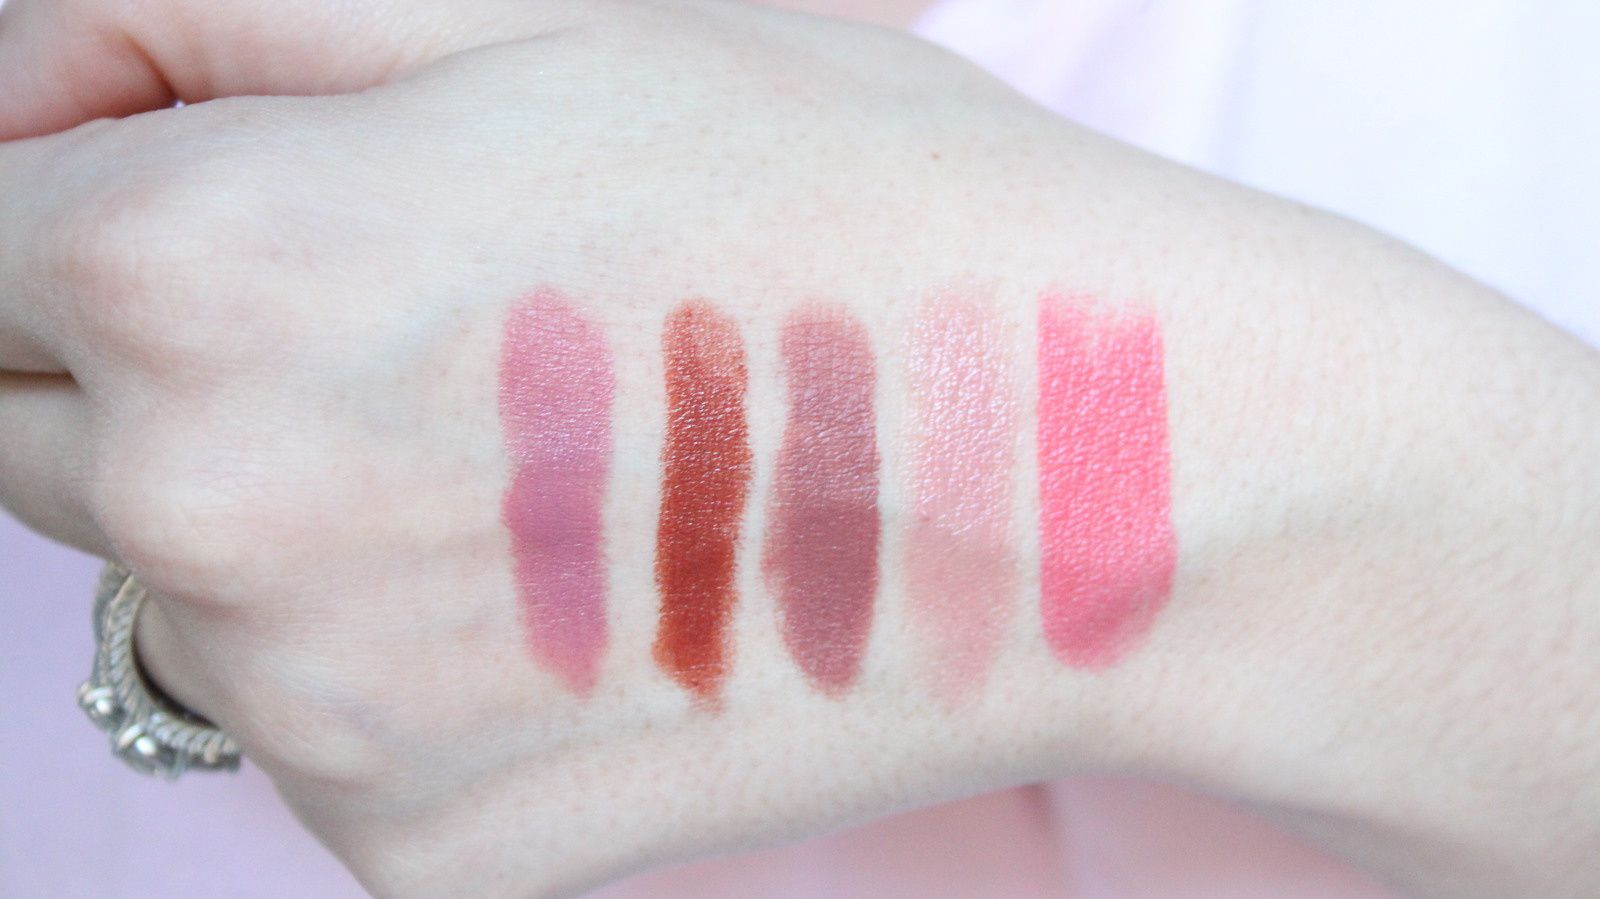 My Everyday Go-To Lipsticks! Nudes/Neutrals 2016